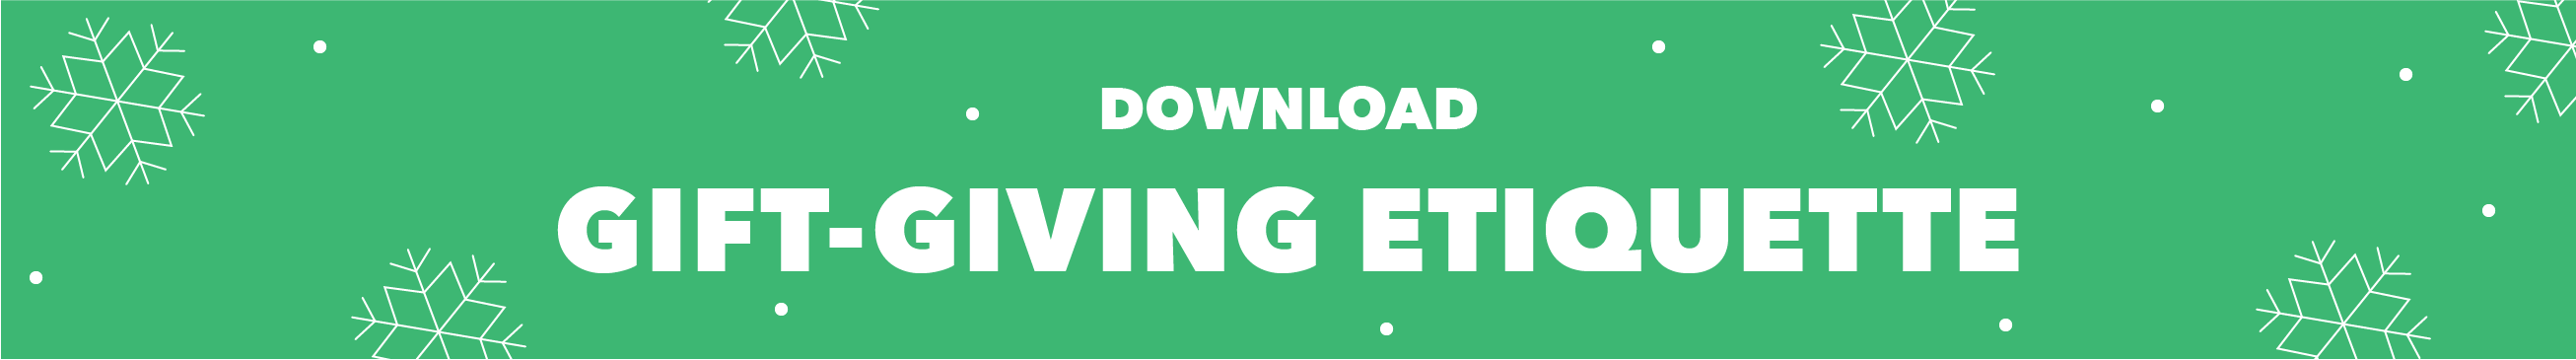 Holiday gift-giving download button